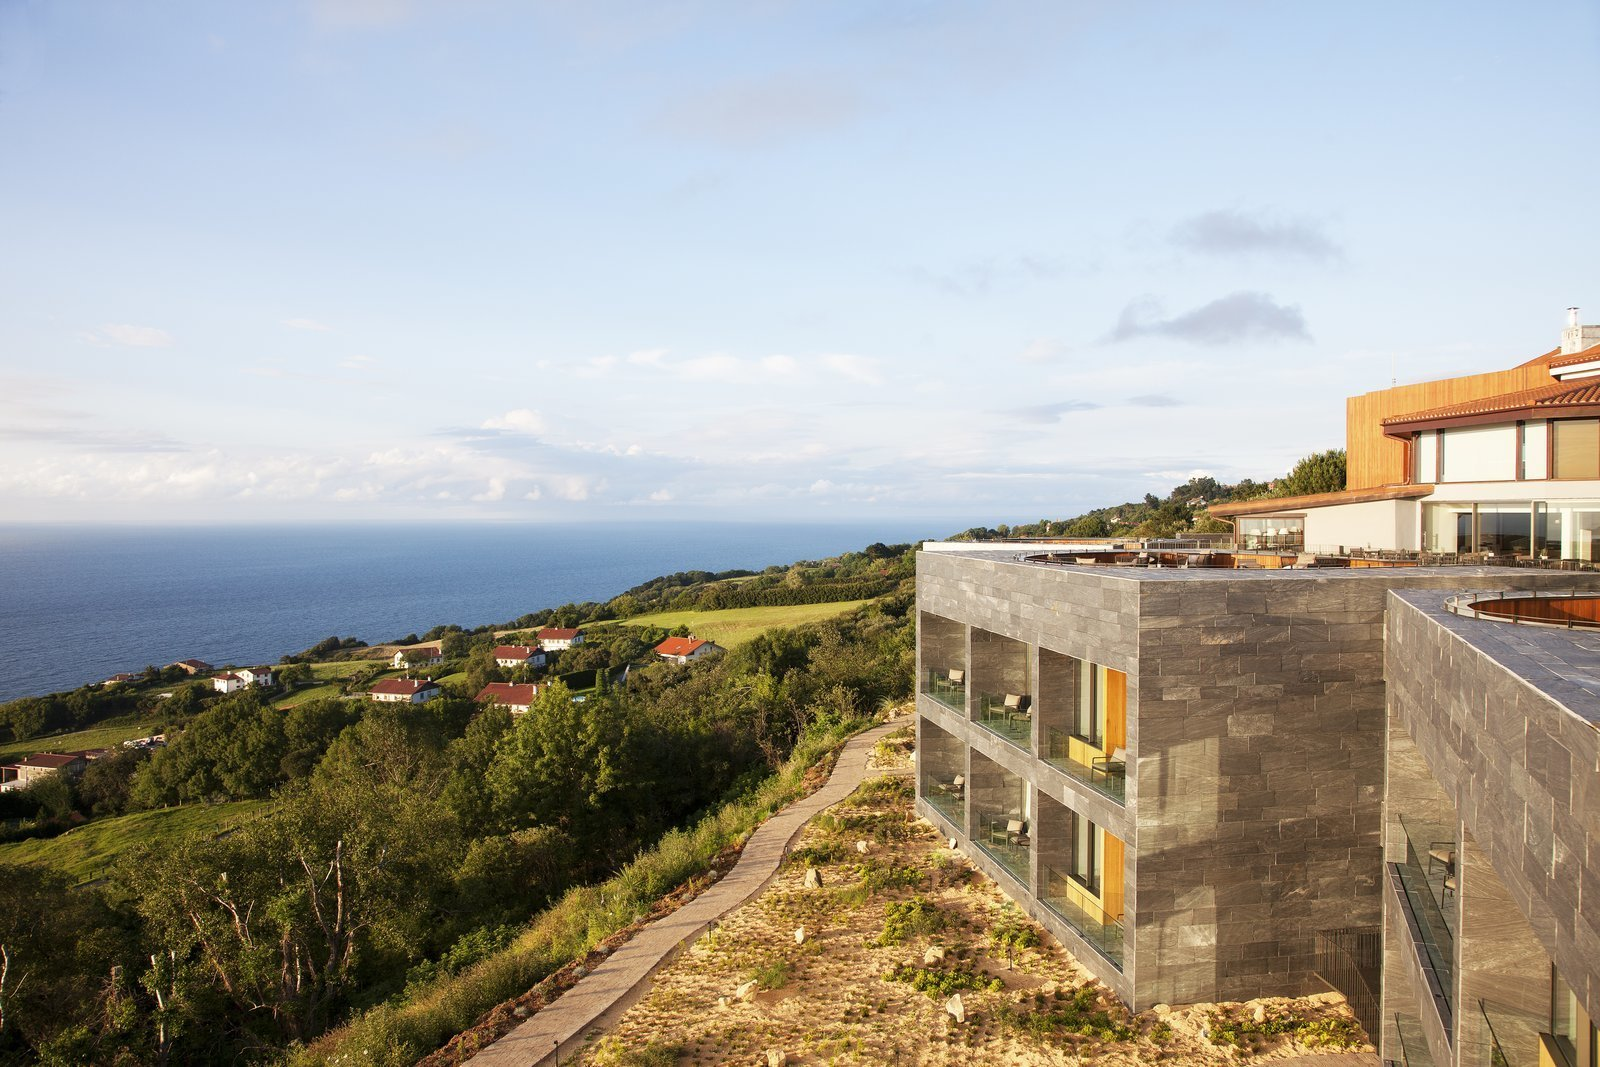 Comprised of five stone cubicles that are built into the hillside facing the sea, the structure features a rooftop deck with slightly sunken outdoor pits for guests to enjoy. The terraces are connected by a series of planked decking and landscaped gardens that offer a spectacular panoramic view of the coastline.